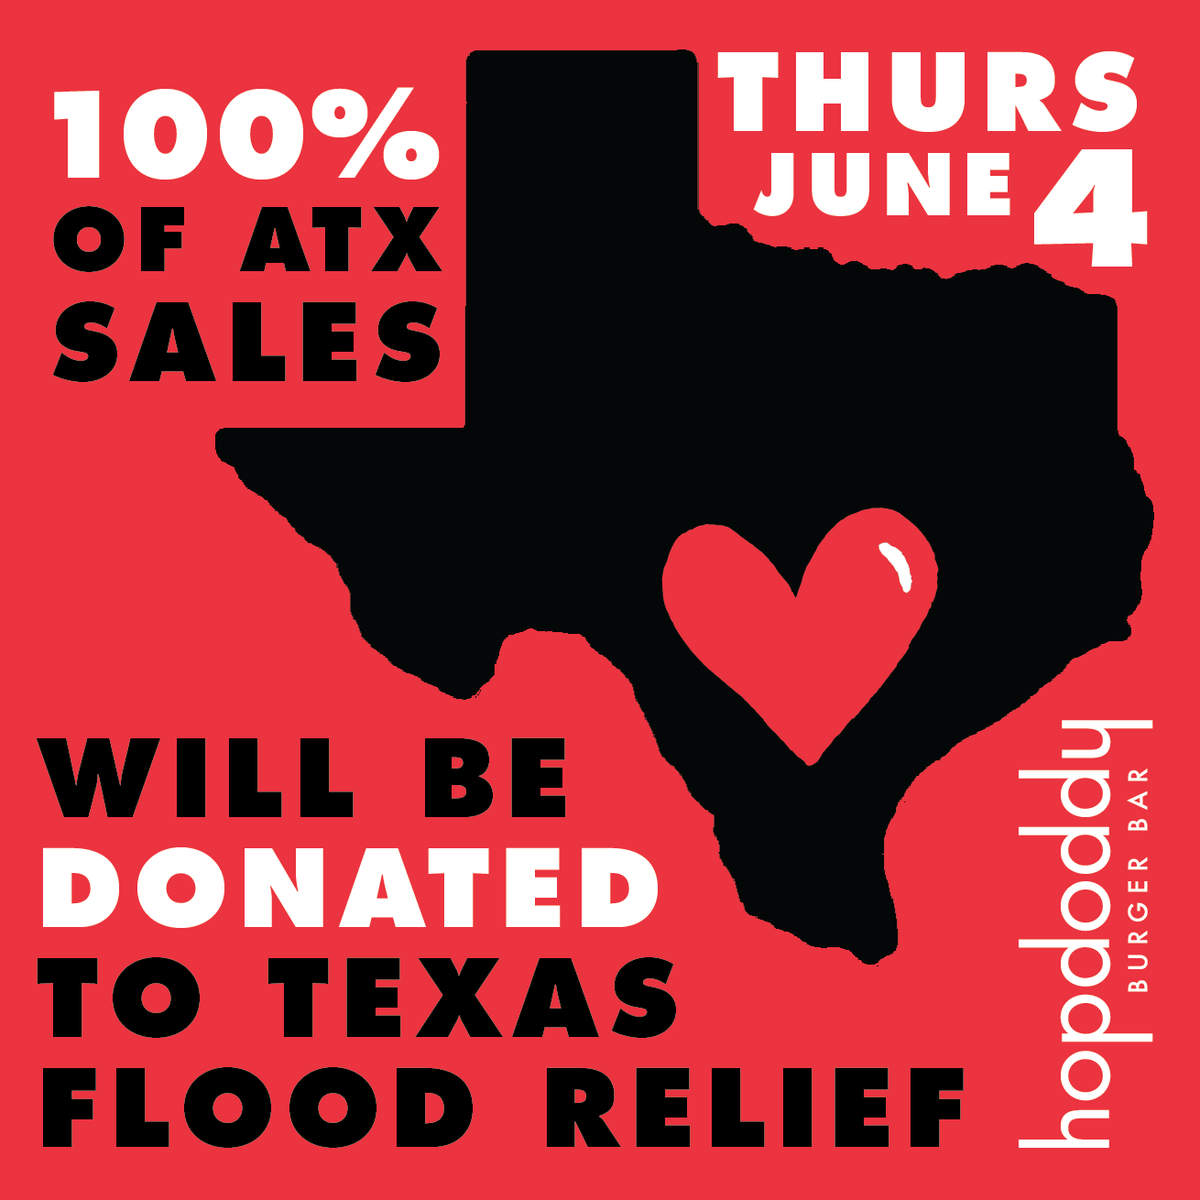 100% OF SALES at #Hopdoddy in #Austin all day on THURS, 6/4 will be donated to @barnabas1664 for TX Flood Relief. http://t.co/AuknCVEHf9